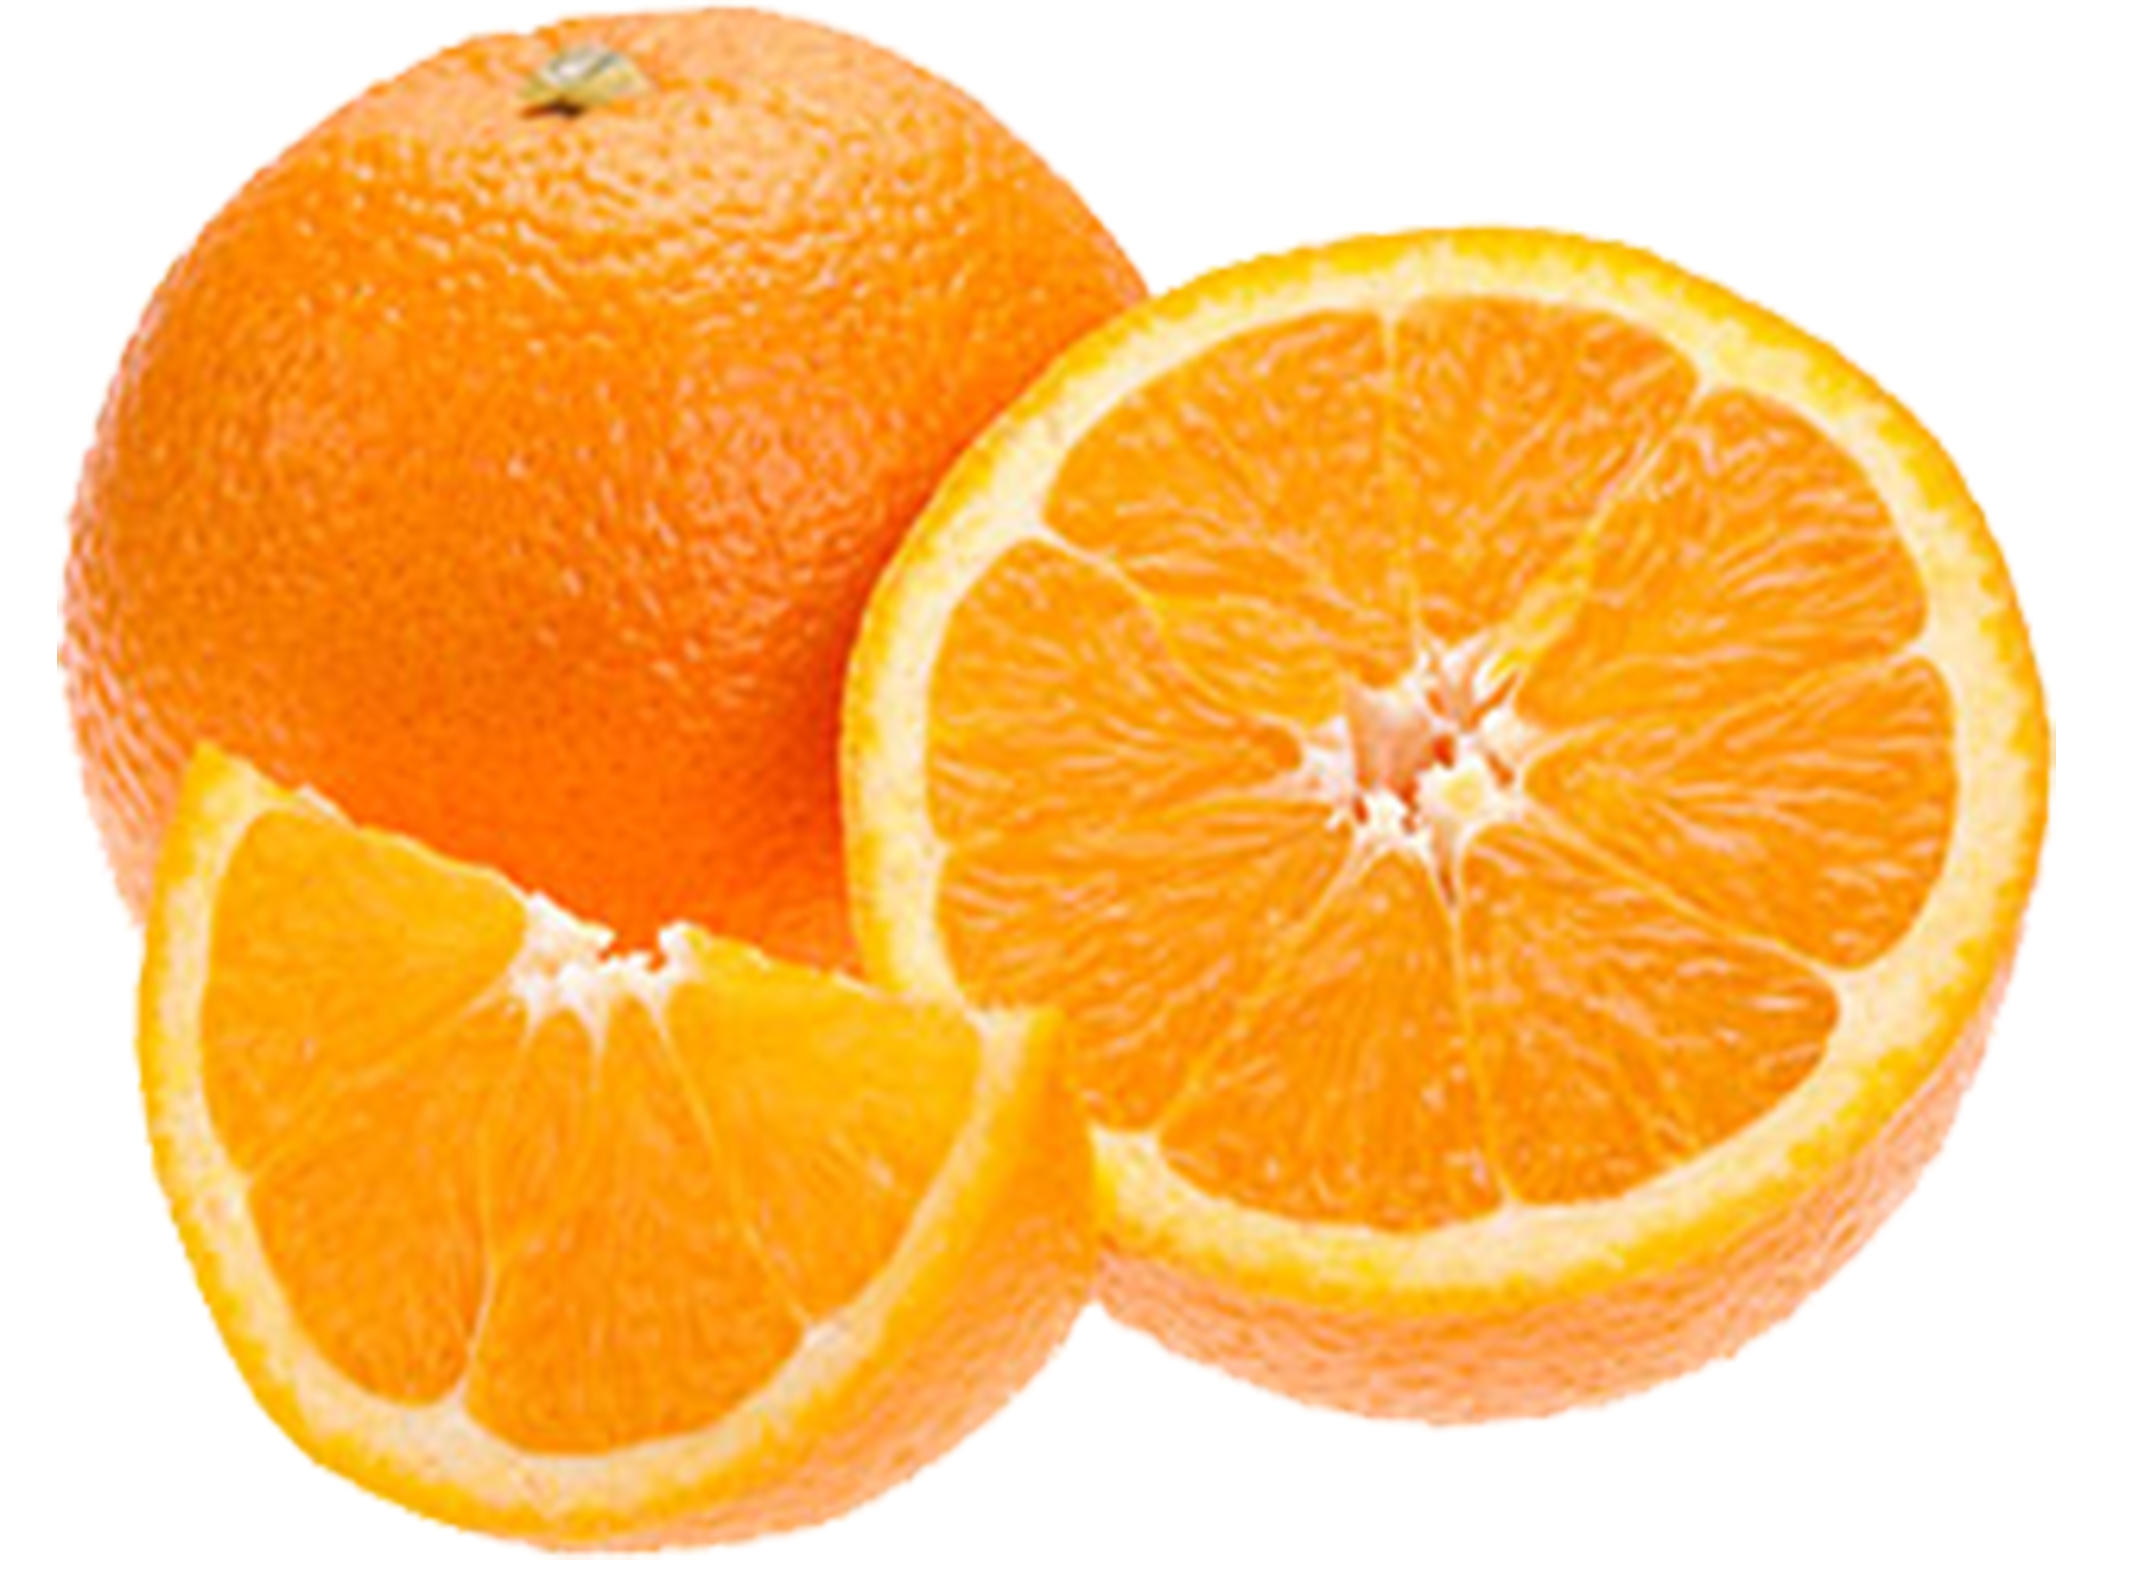 Oranges, Navel (138 ct/cs, 1/2 cup, Tulare County, 40 lbs)